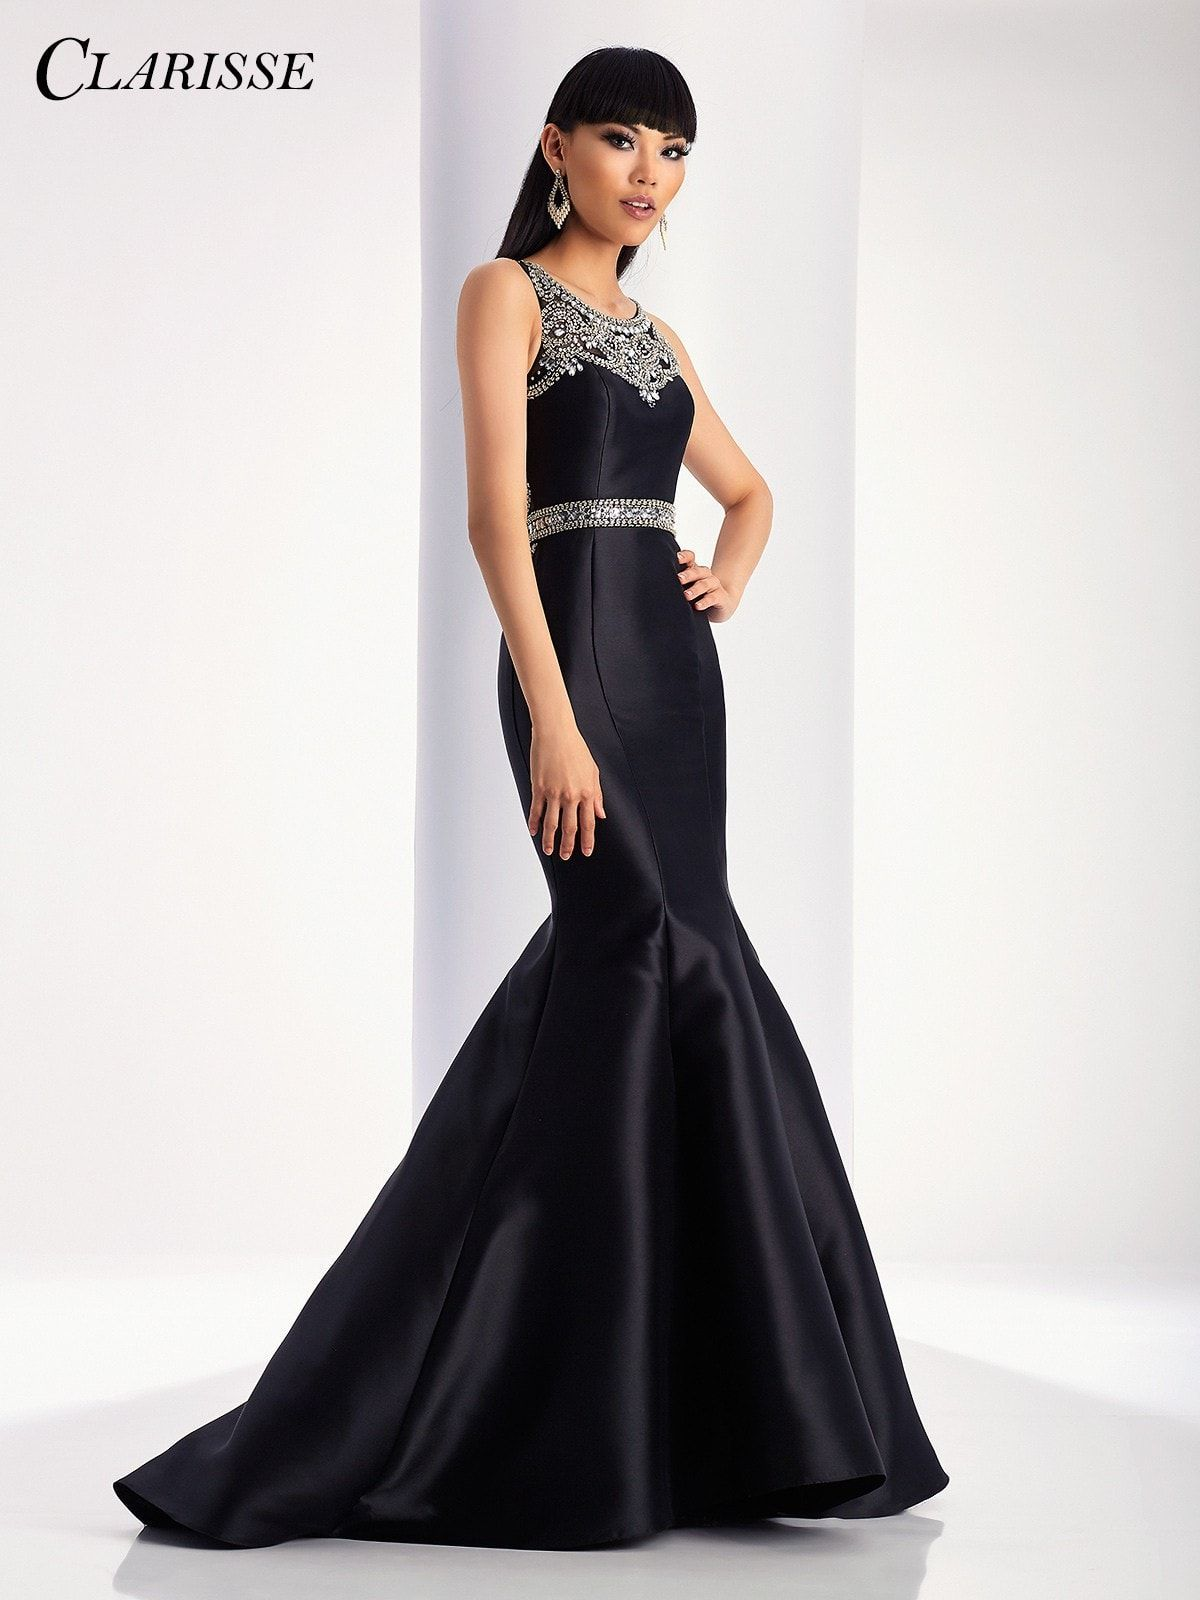 Clarisse prom black mermaid prom dress black mermaid prom